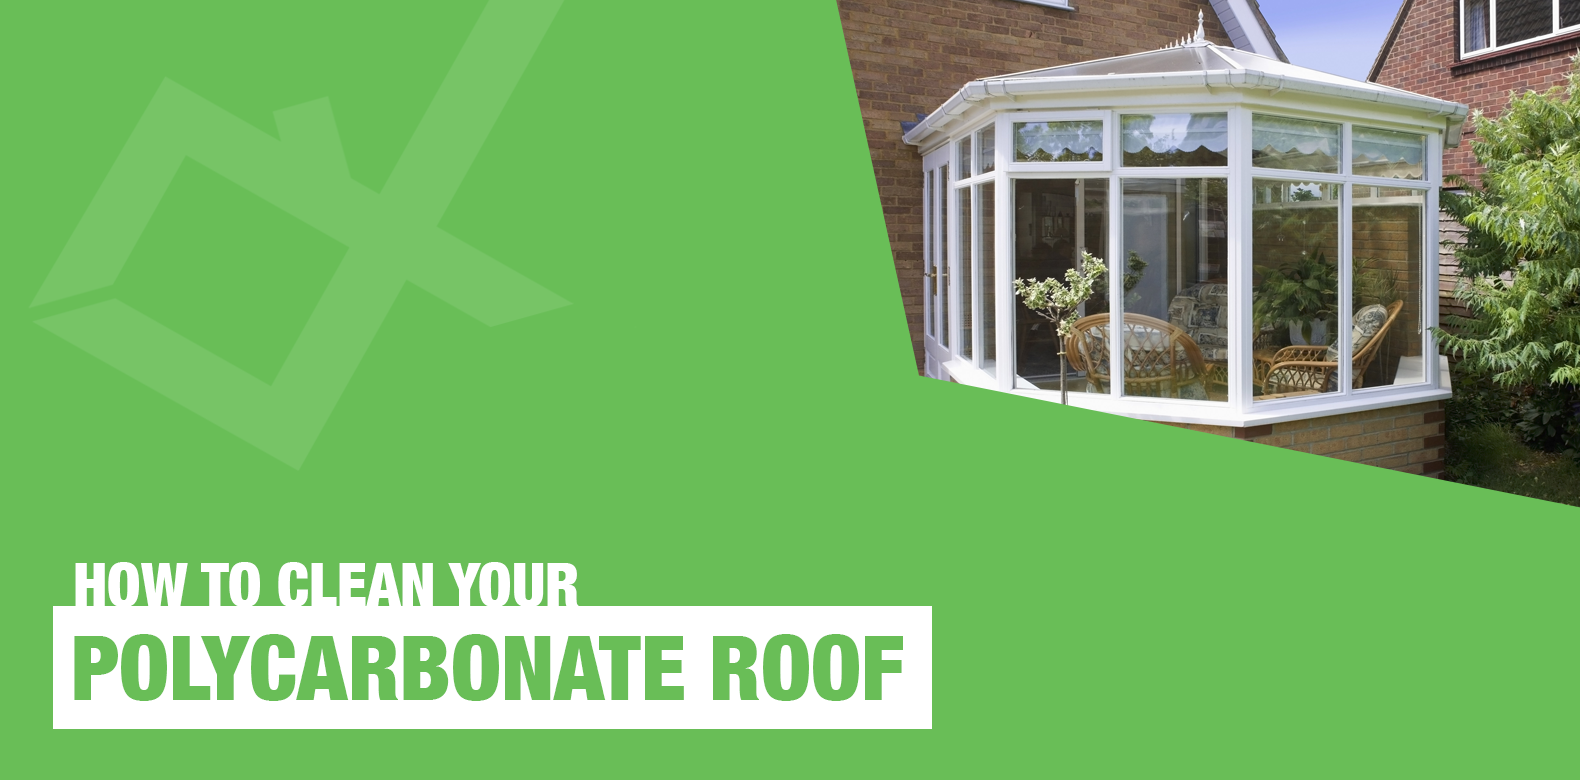 How to Clean Your Polycarbonate Roof | Roofing Megastore